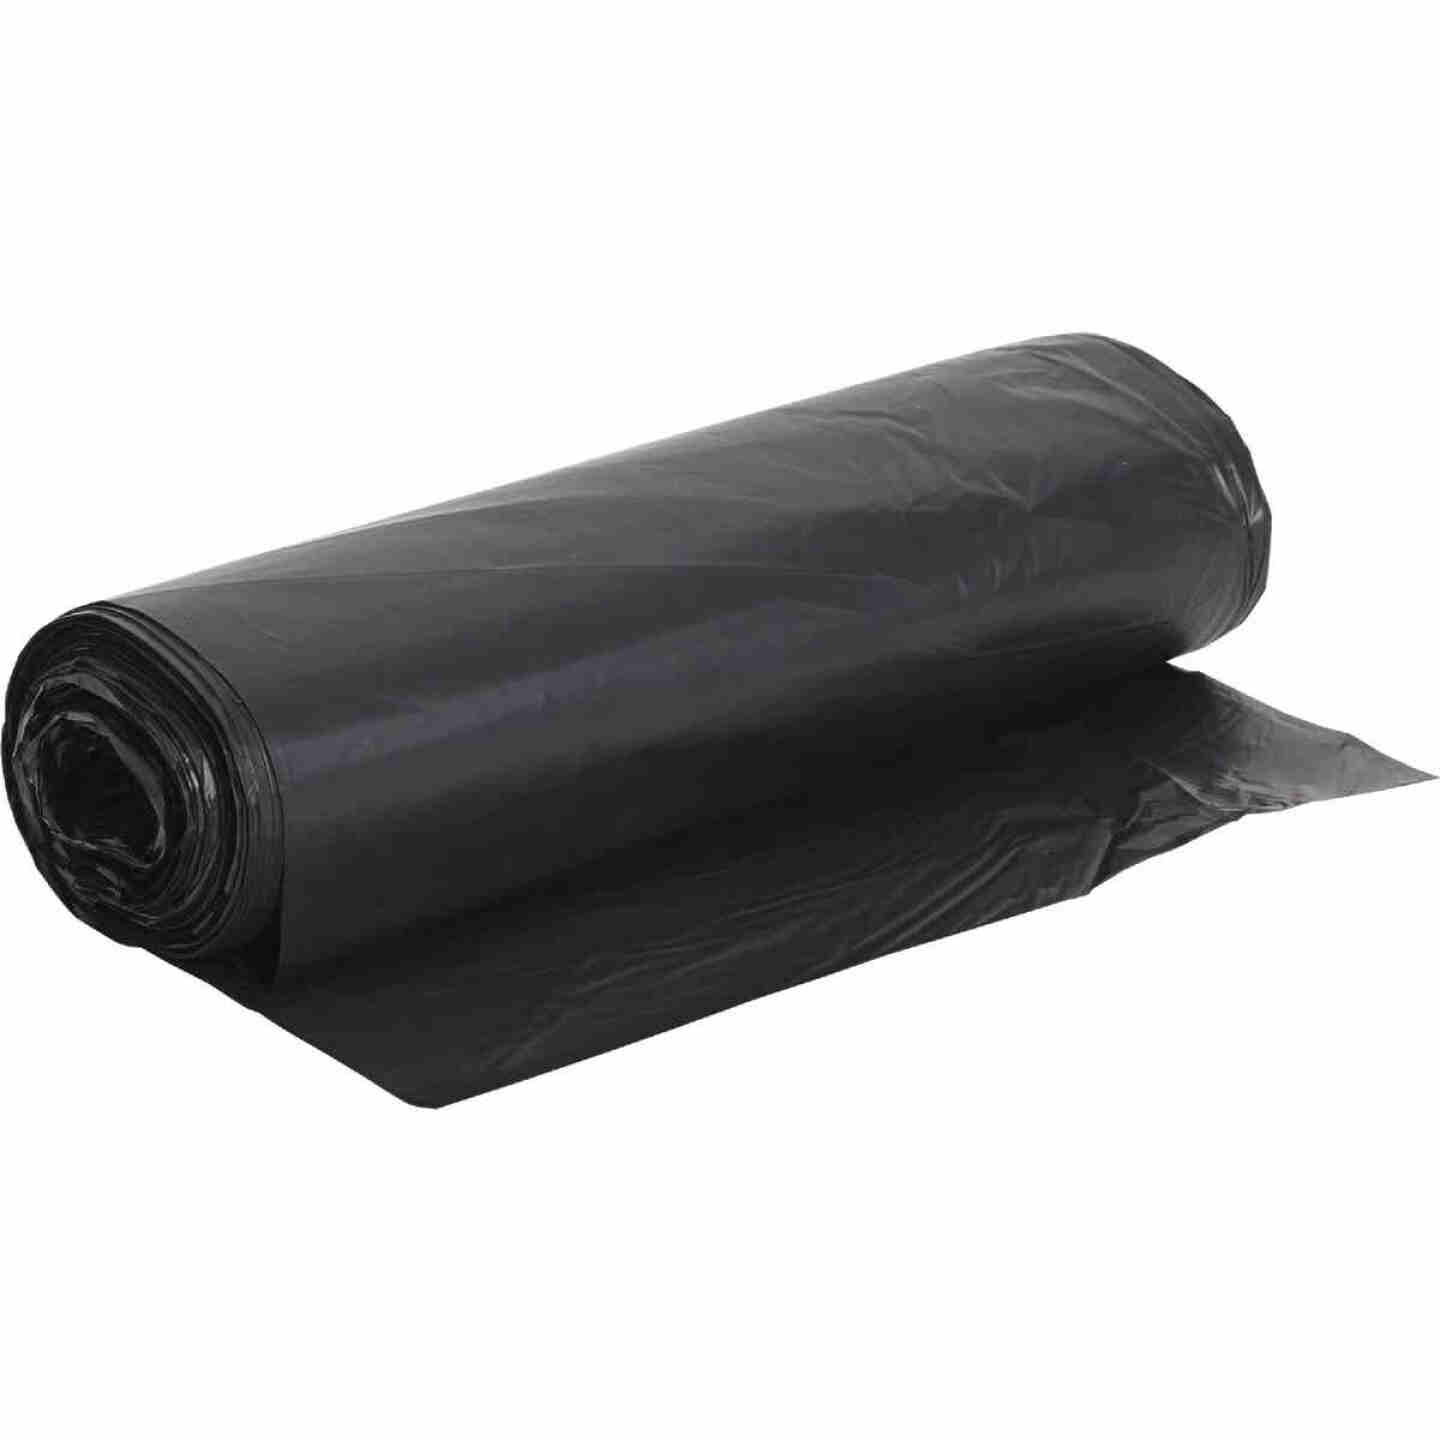 Performance Plus 56 Gal. Black High Density Can Liner (150-Count) Image 1